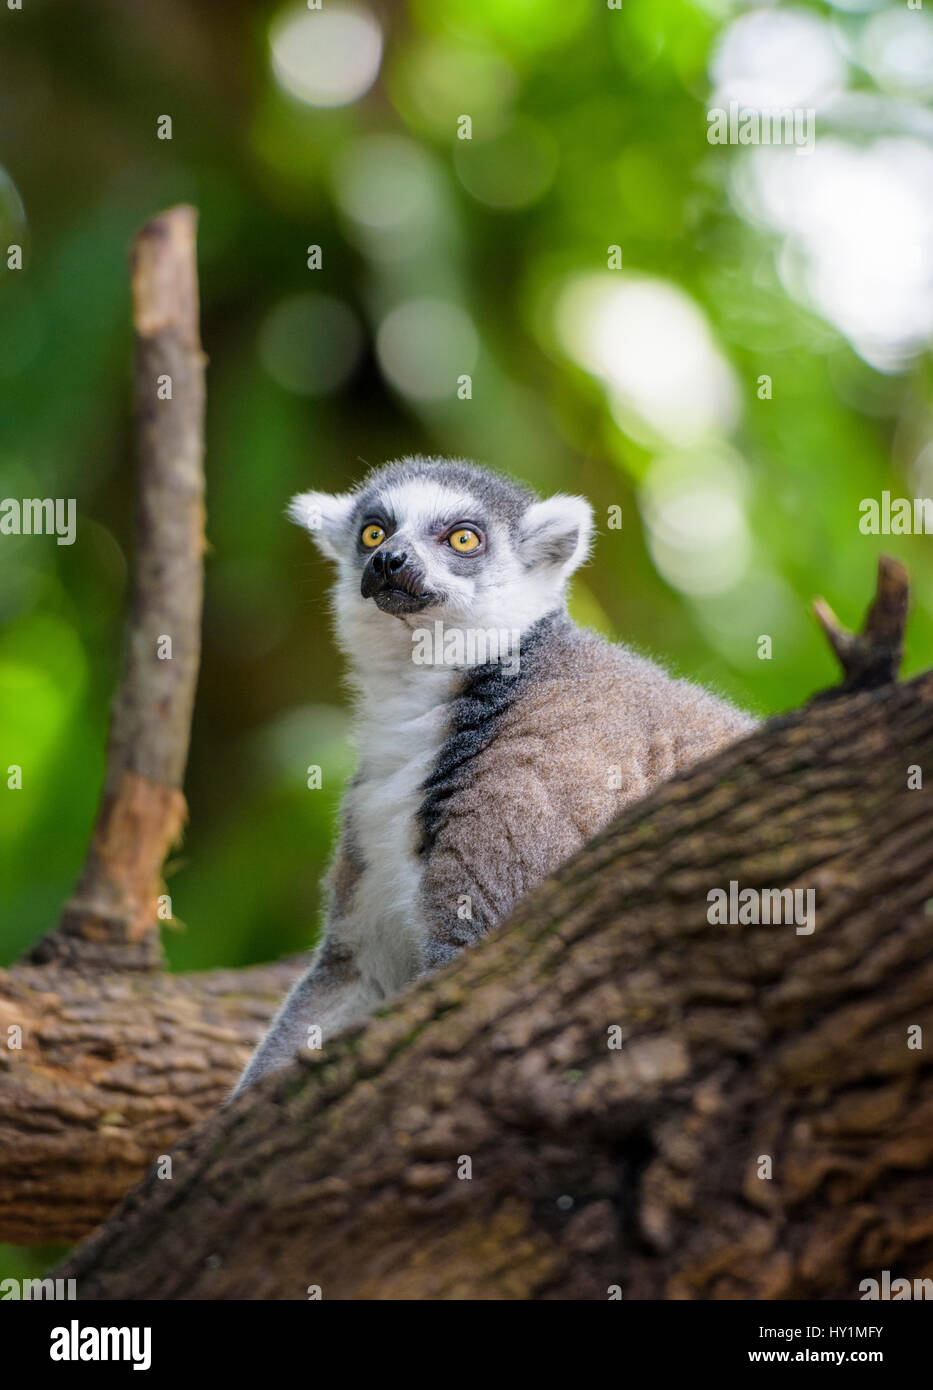 Ring-tailed lemur at Singapore Zoo, Singapore Stock Photo